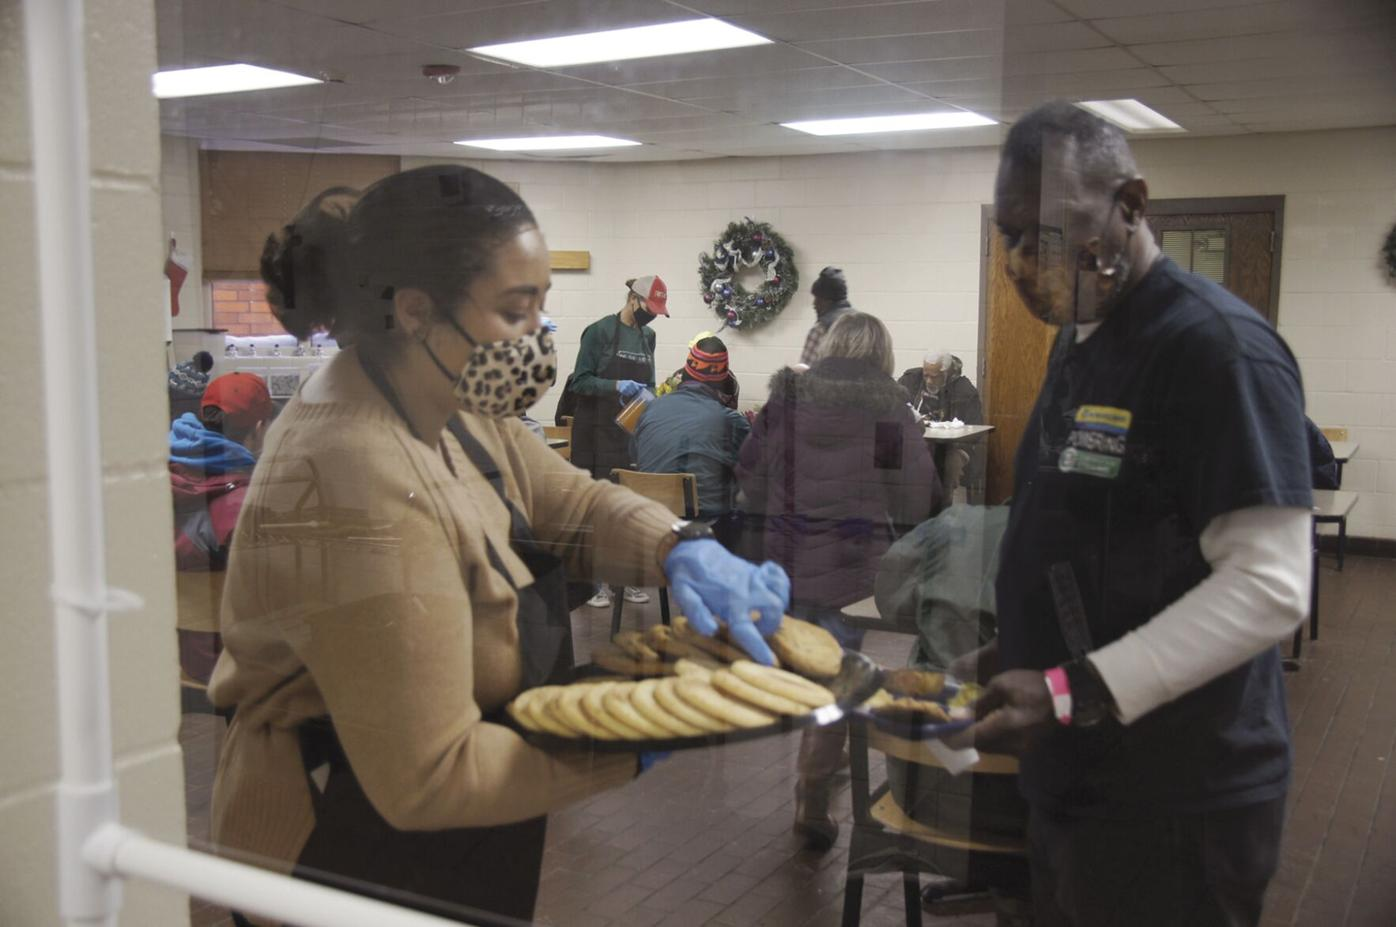 St. Louis Park residents volunteer at Union Gospel Mission Christmas Day - 1